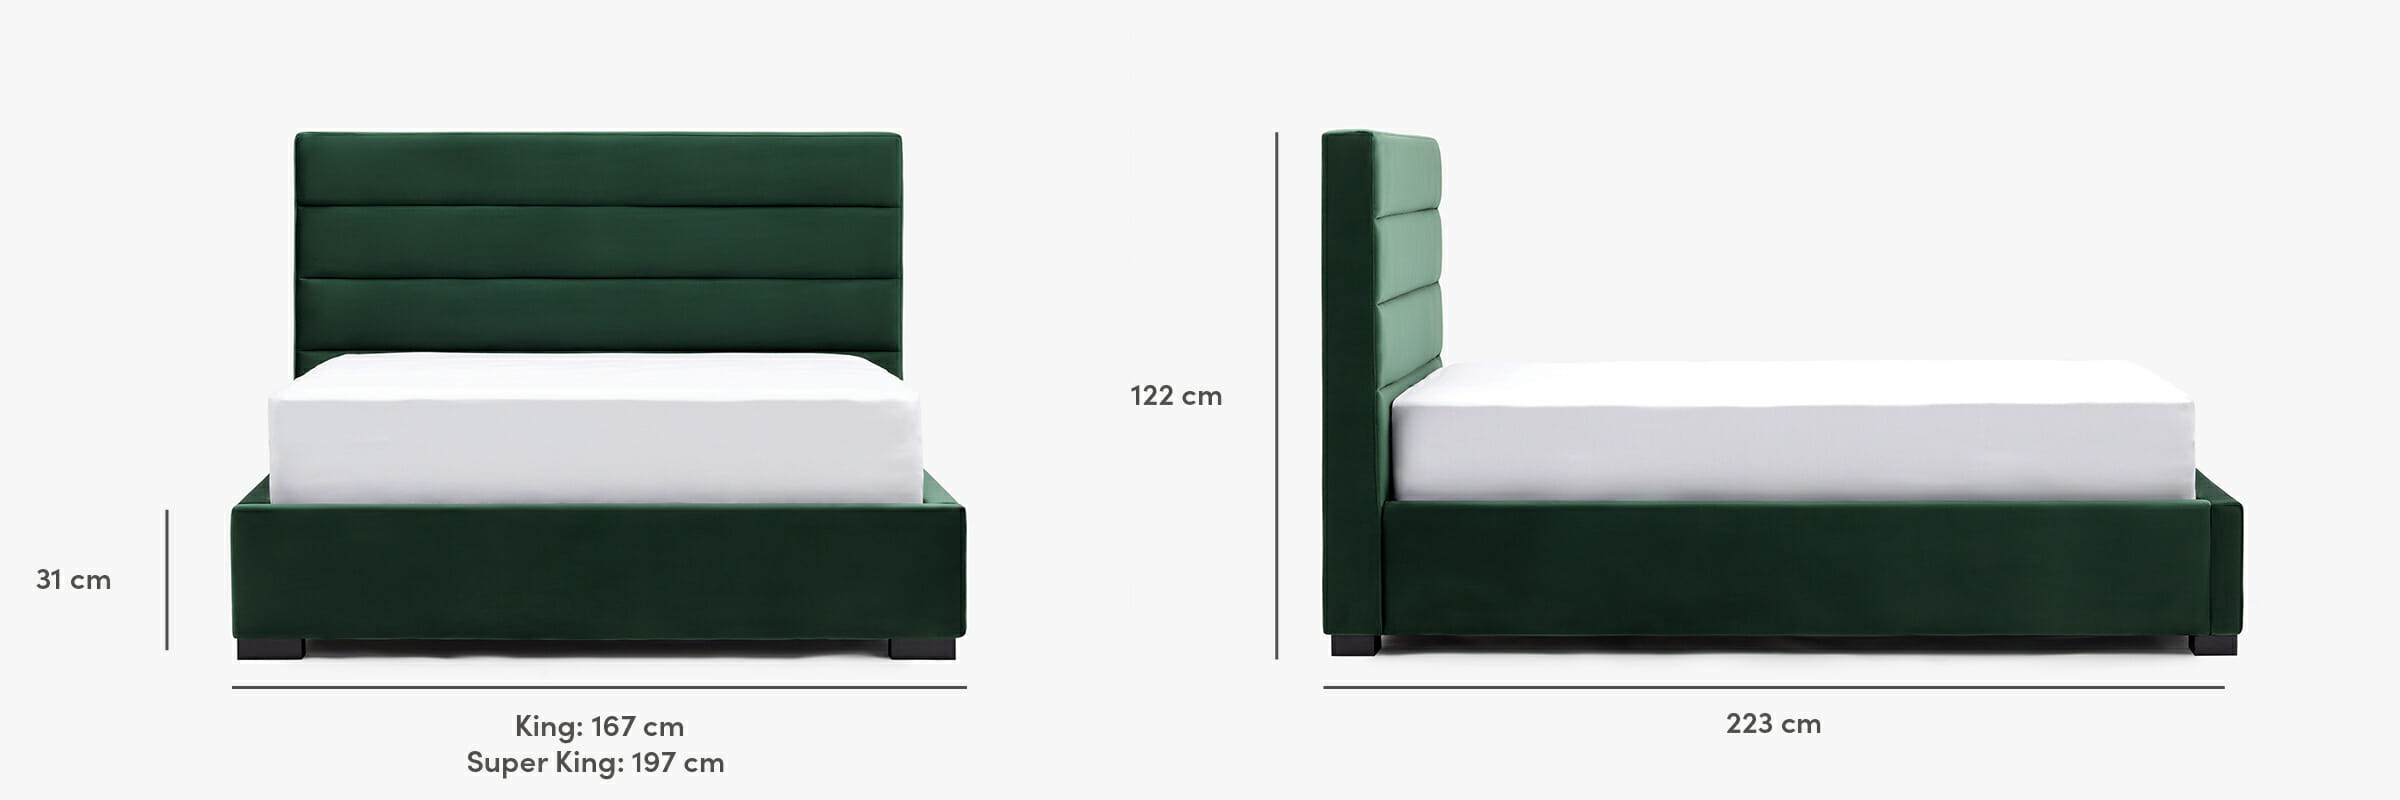 The oxford bed dimensions